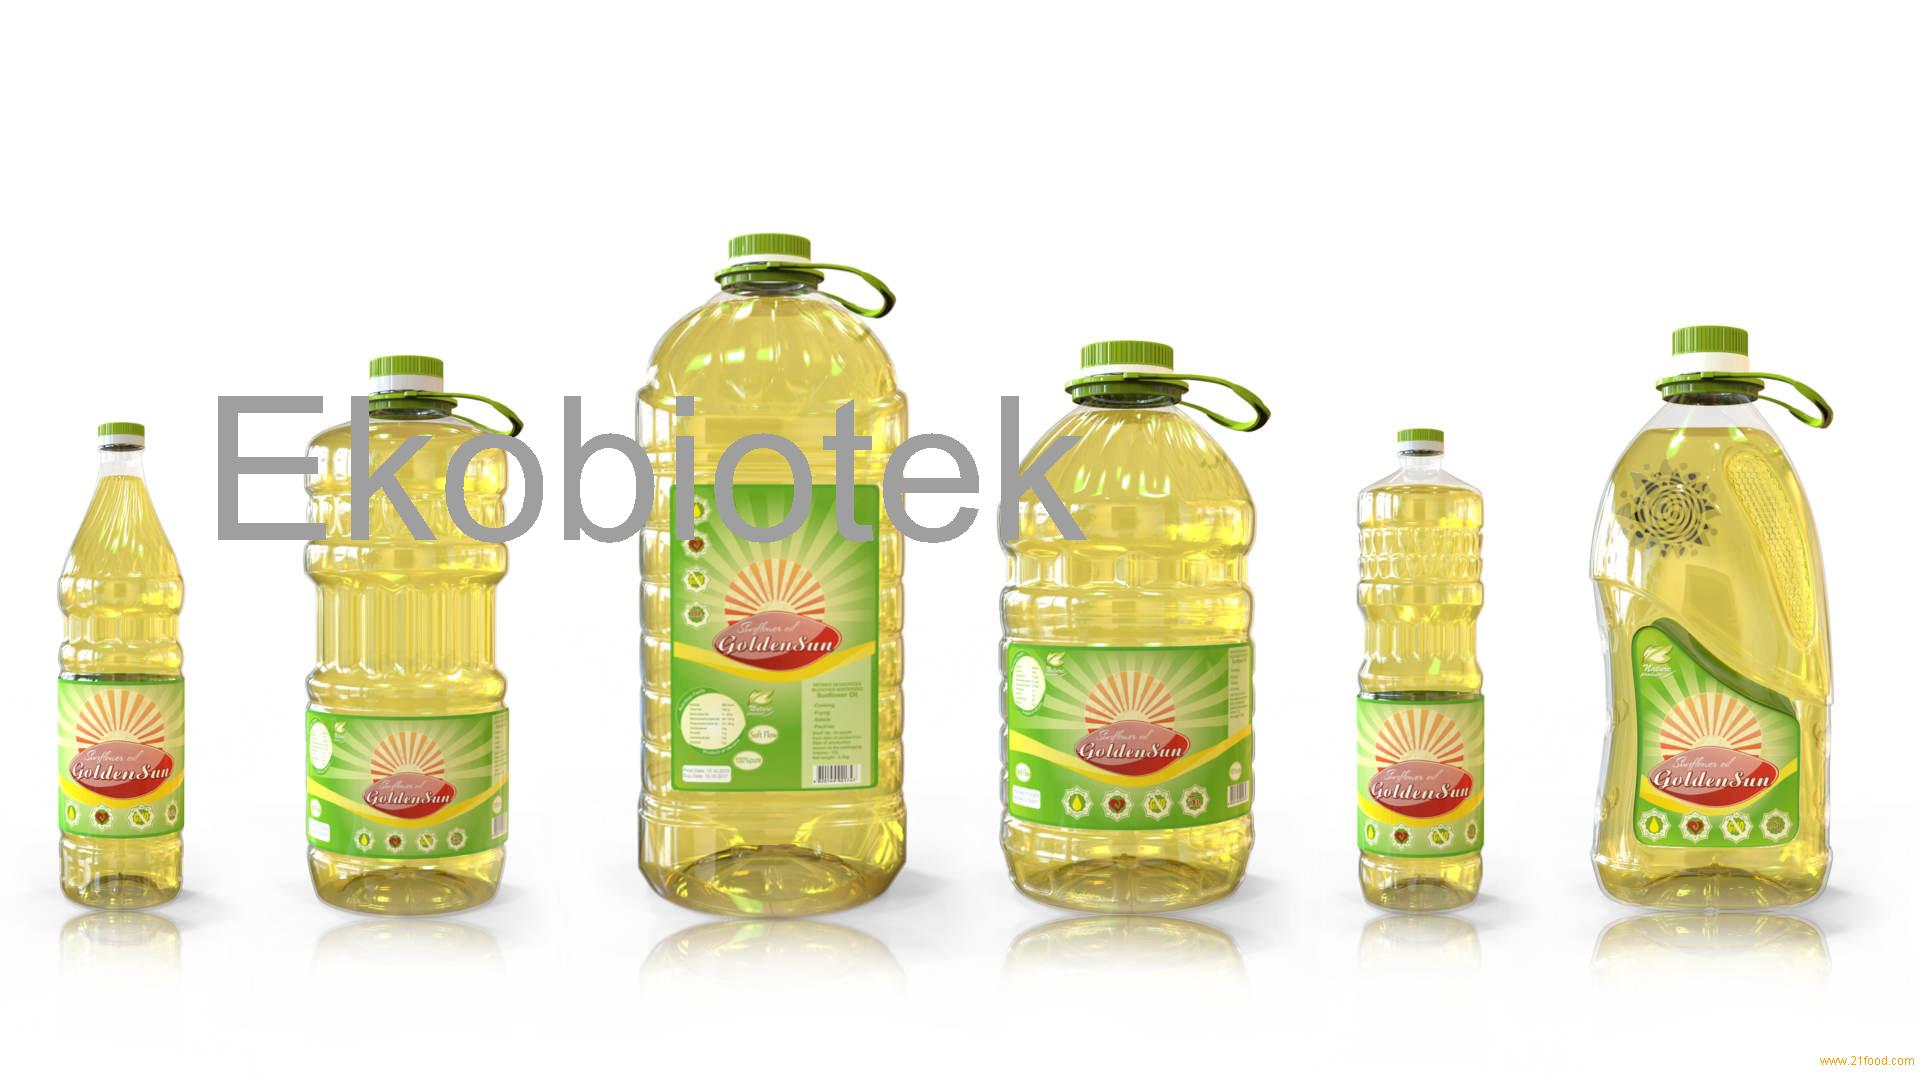 Pure Refined Deodorized Sunflower Oil products,Ukraine Pure Refined Deodorized Sunflower Oil supplier1920 x 1080 jpeg 146kB